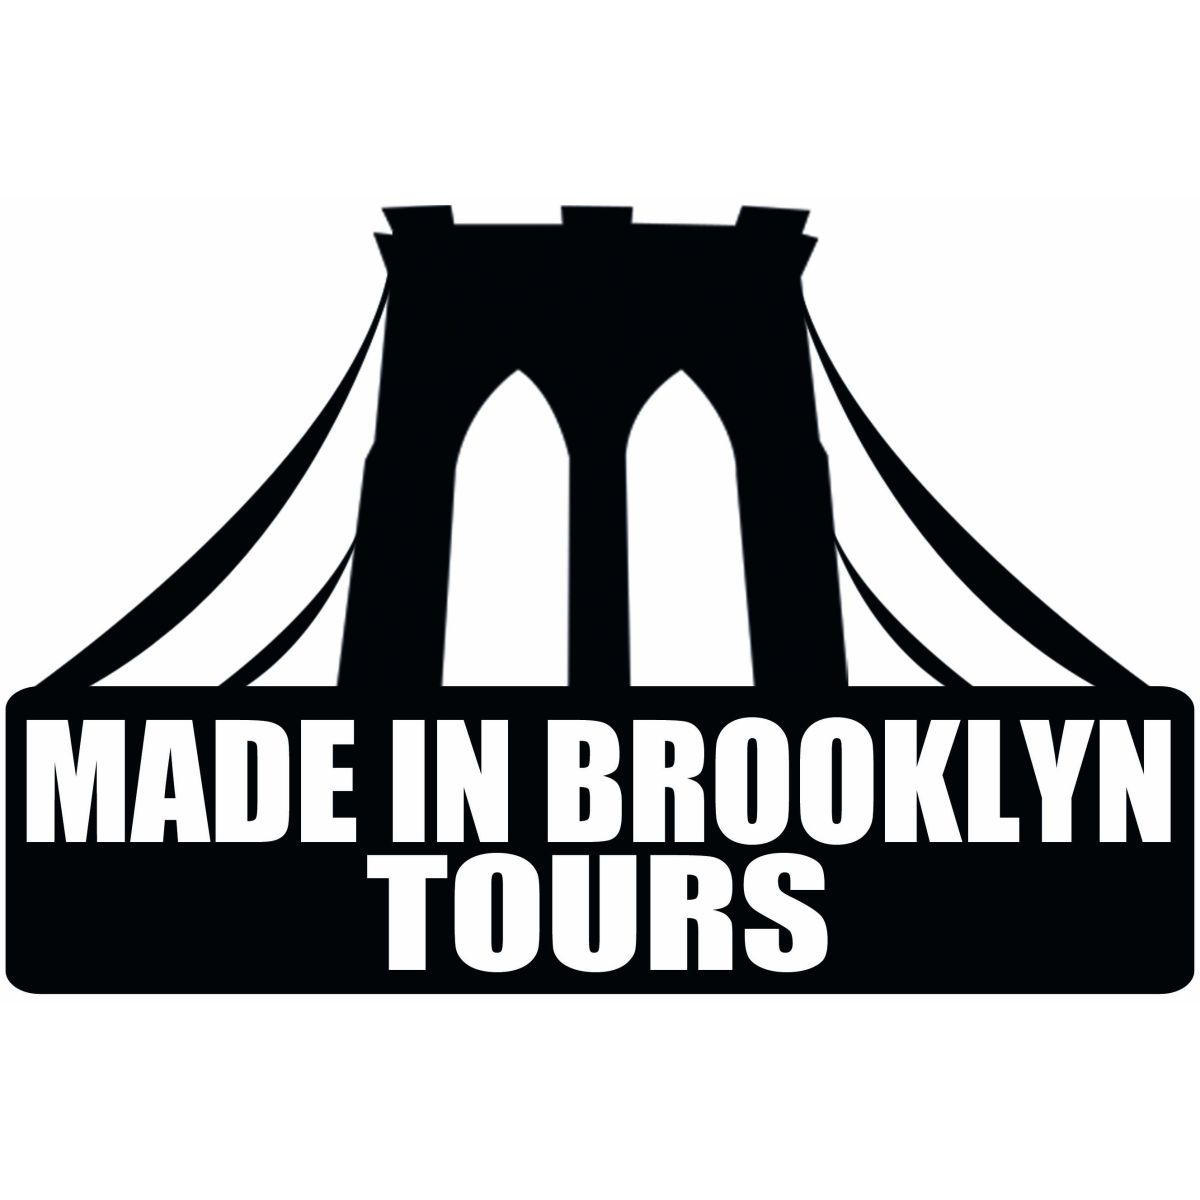 #1339: Dom Gervasi, Made in Brooklyn Tours